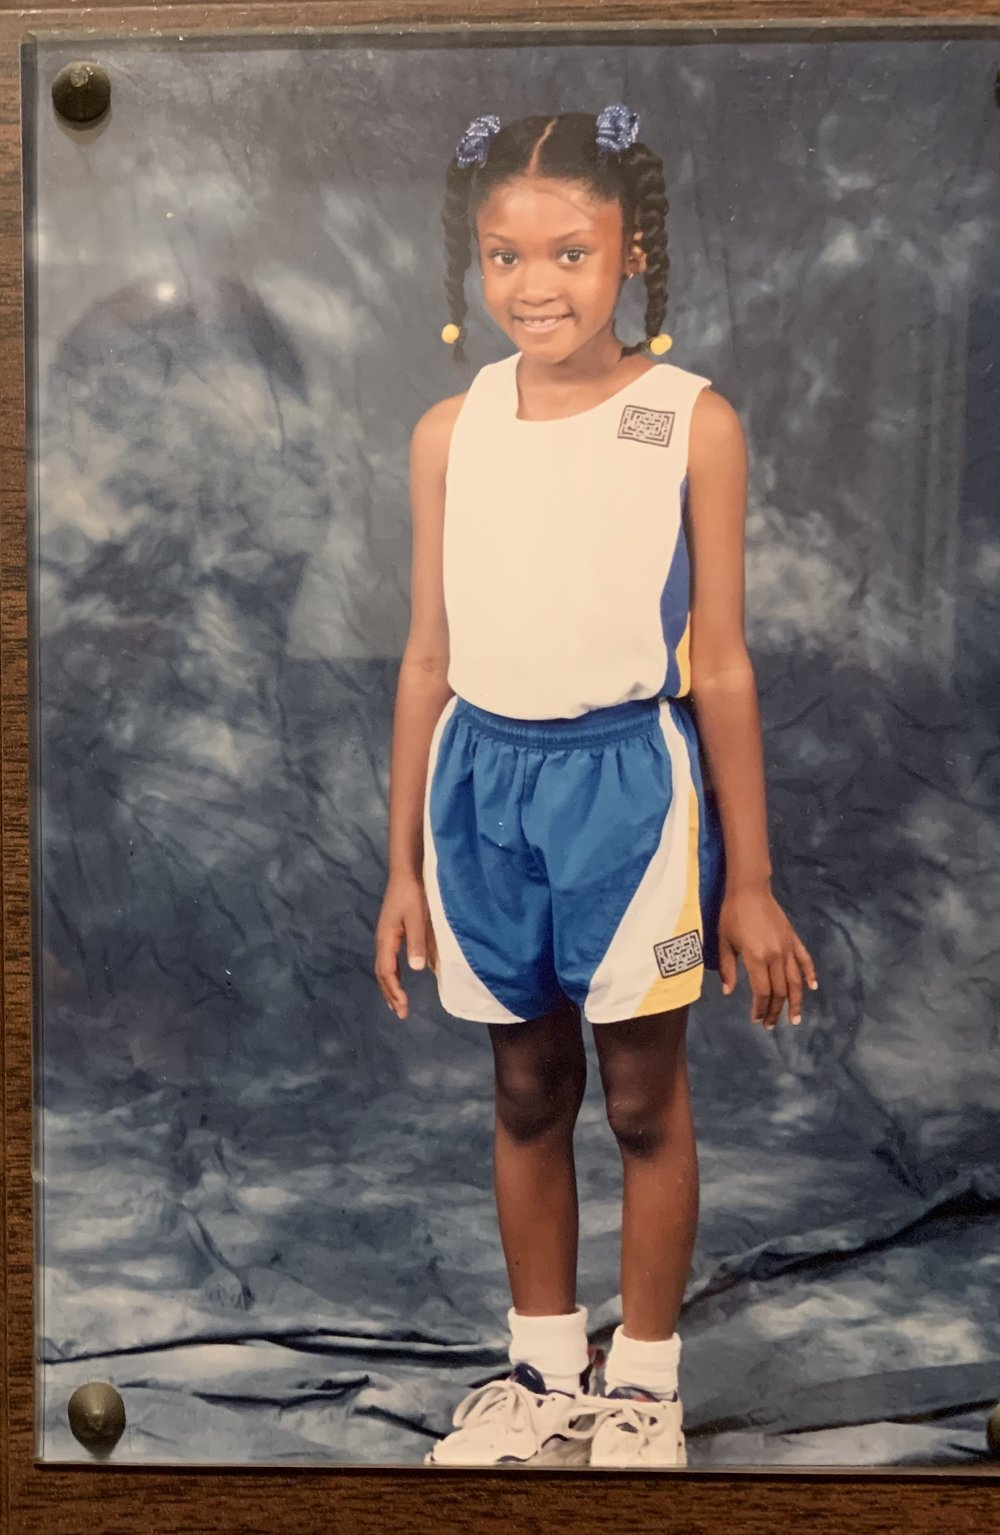 Brittany Noelle Youth Track Photo